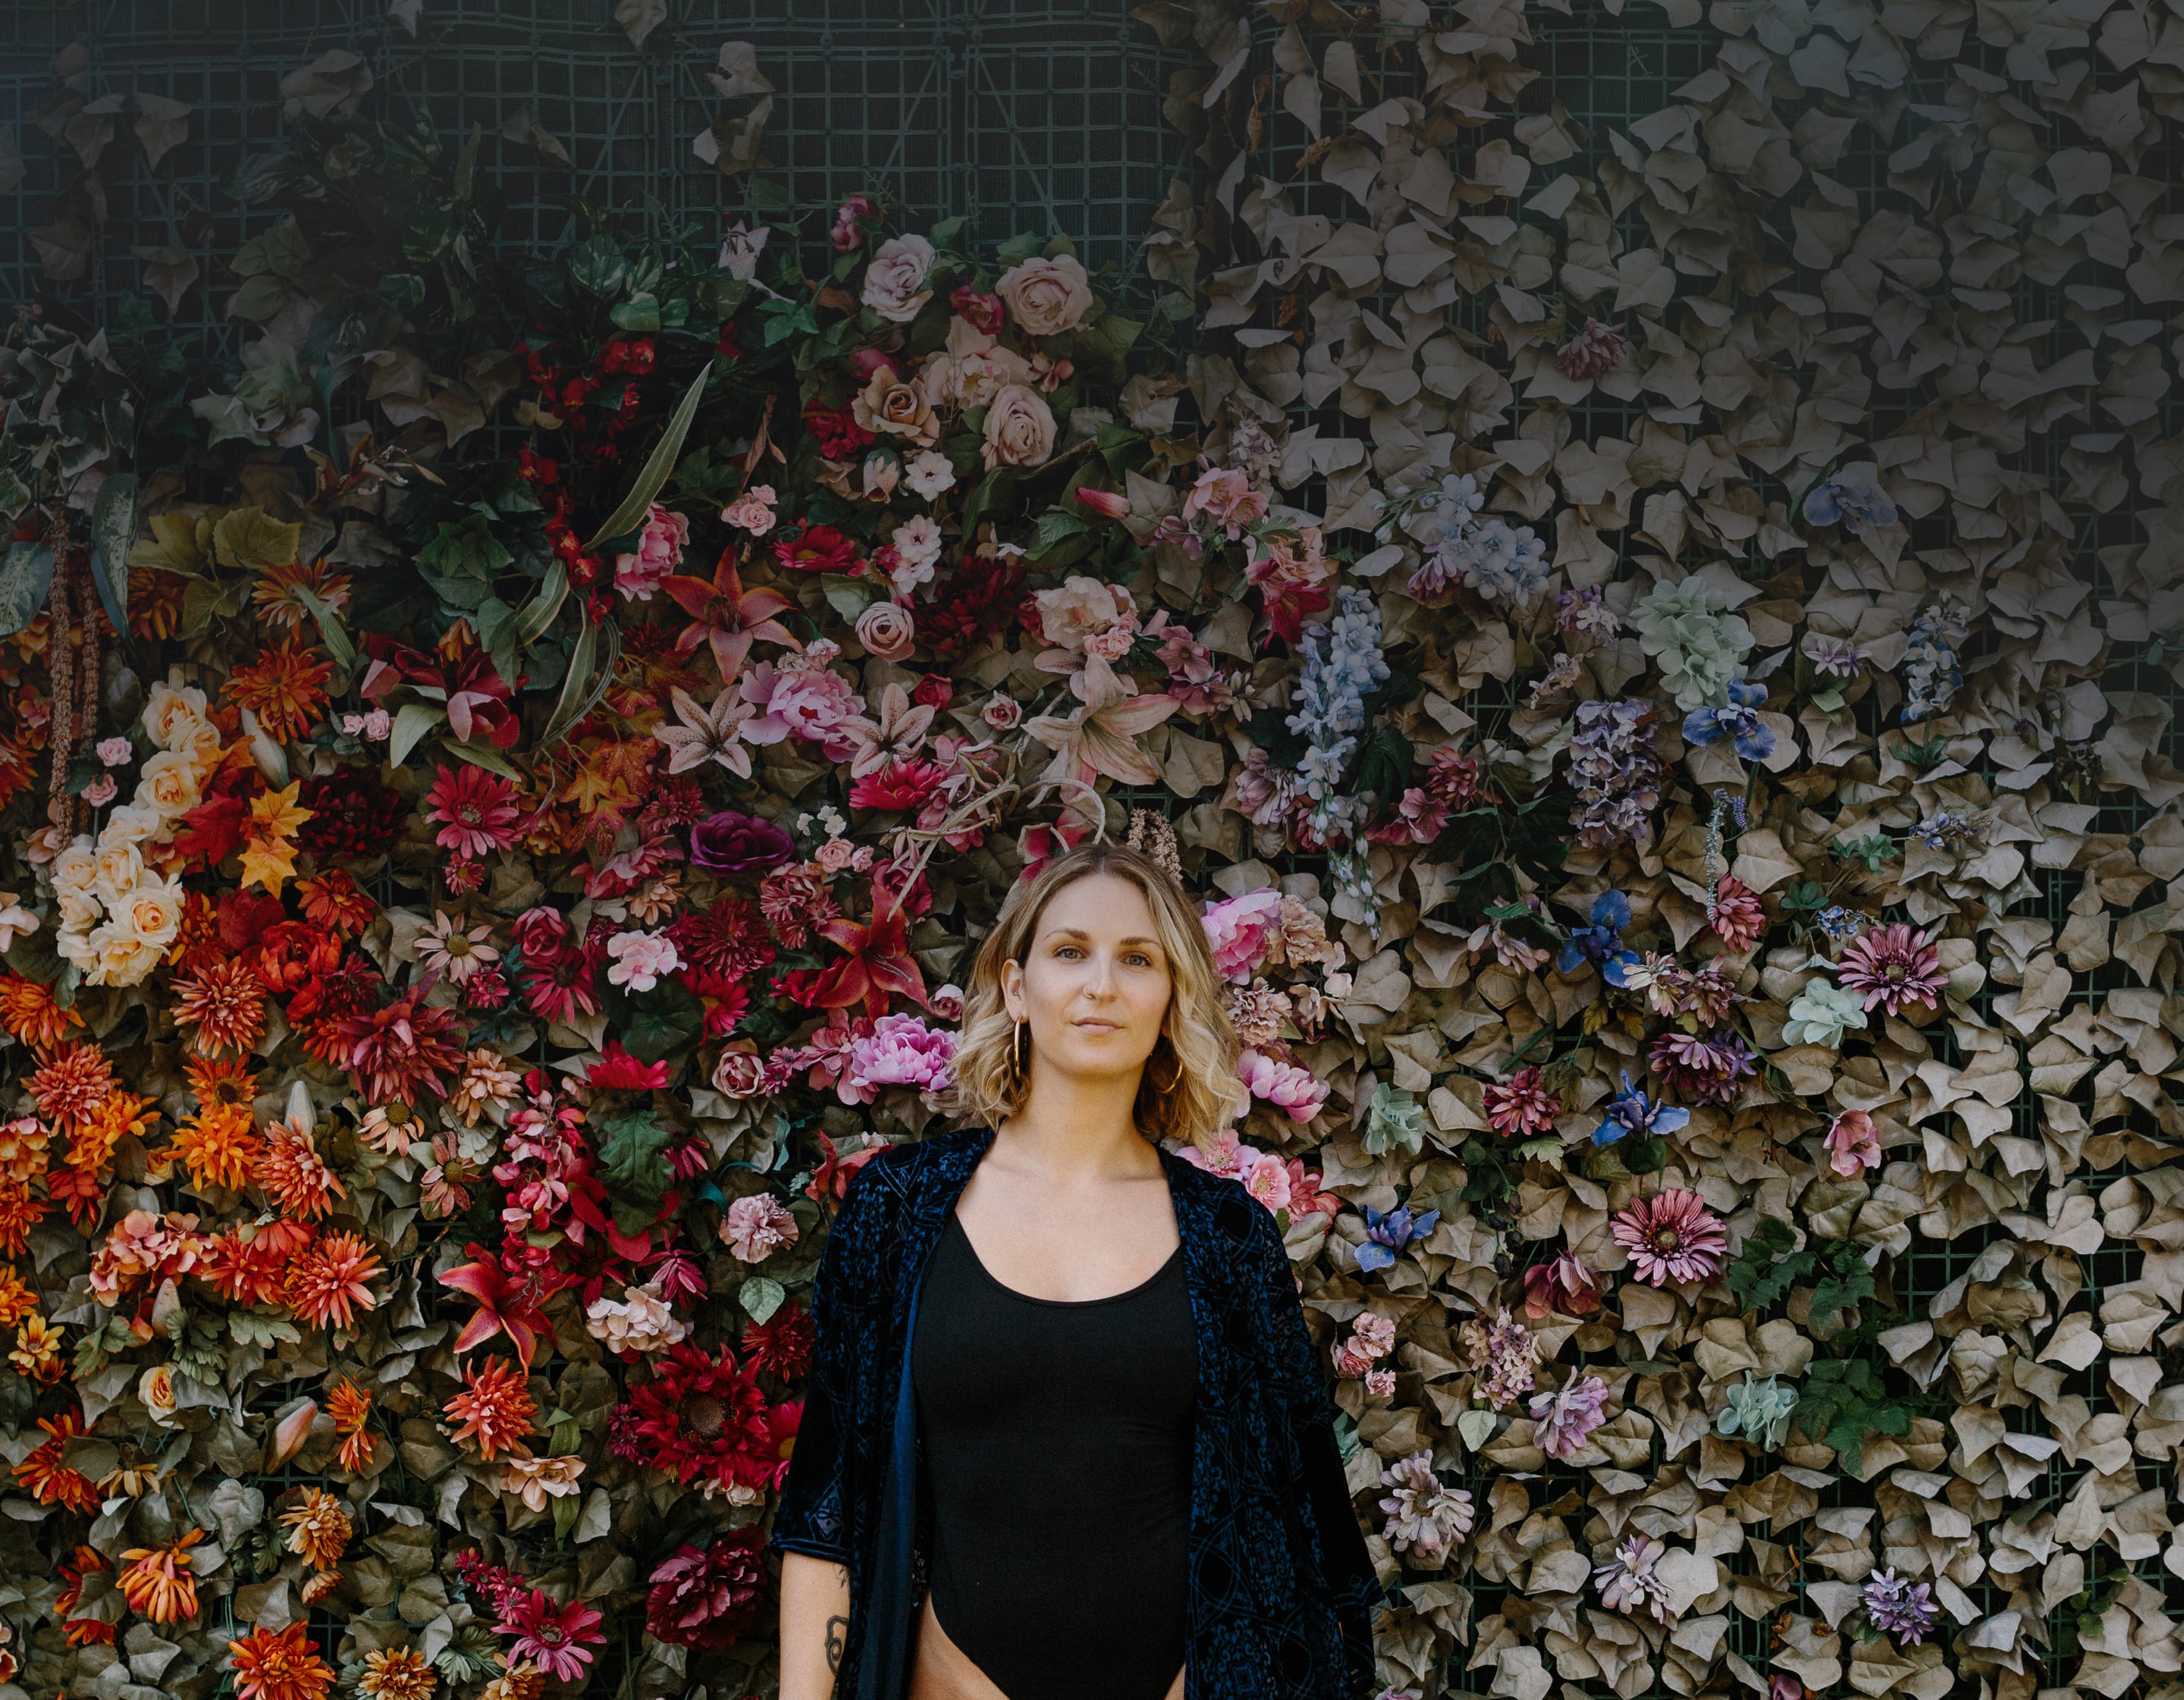 Francesca standing in front of a large flower and greenery wall